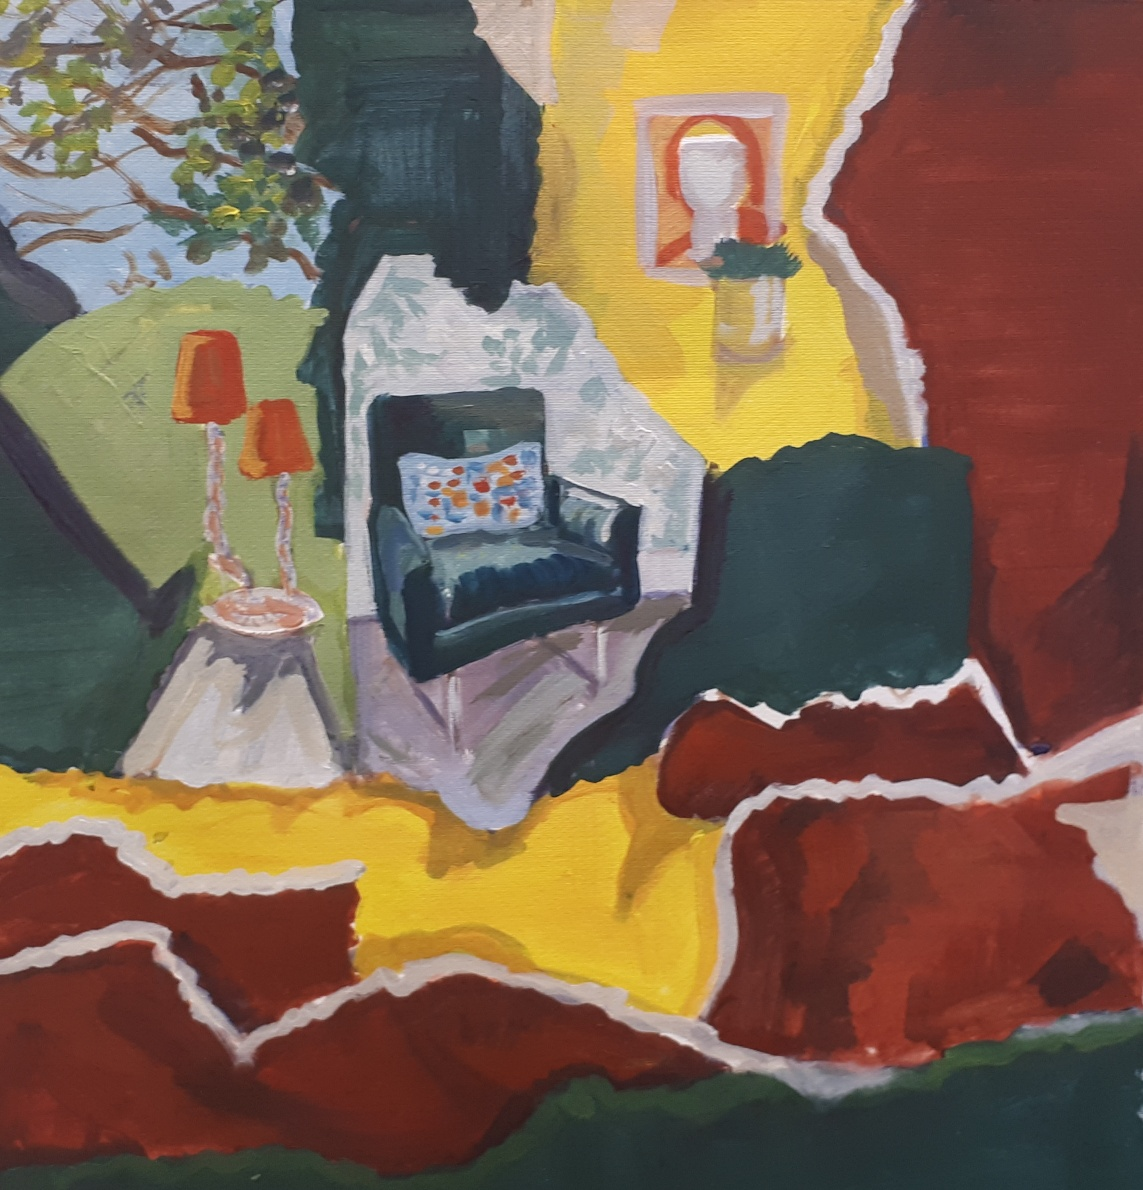 Nua Collective - Artist - Irene O Neill - Painting from Collage 'Home' Acrylic on paper 2019